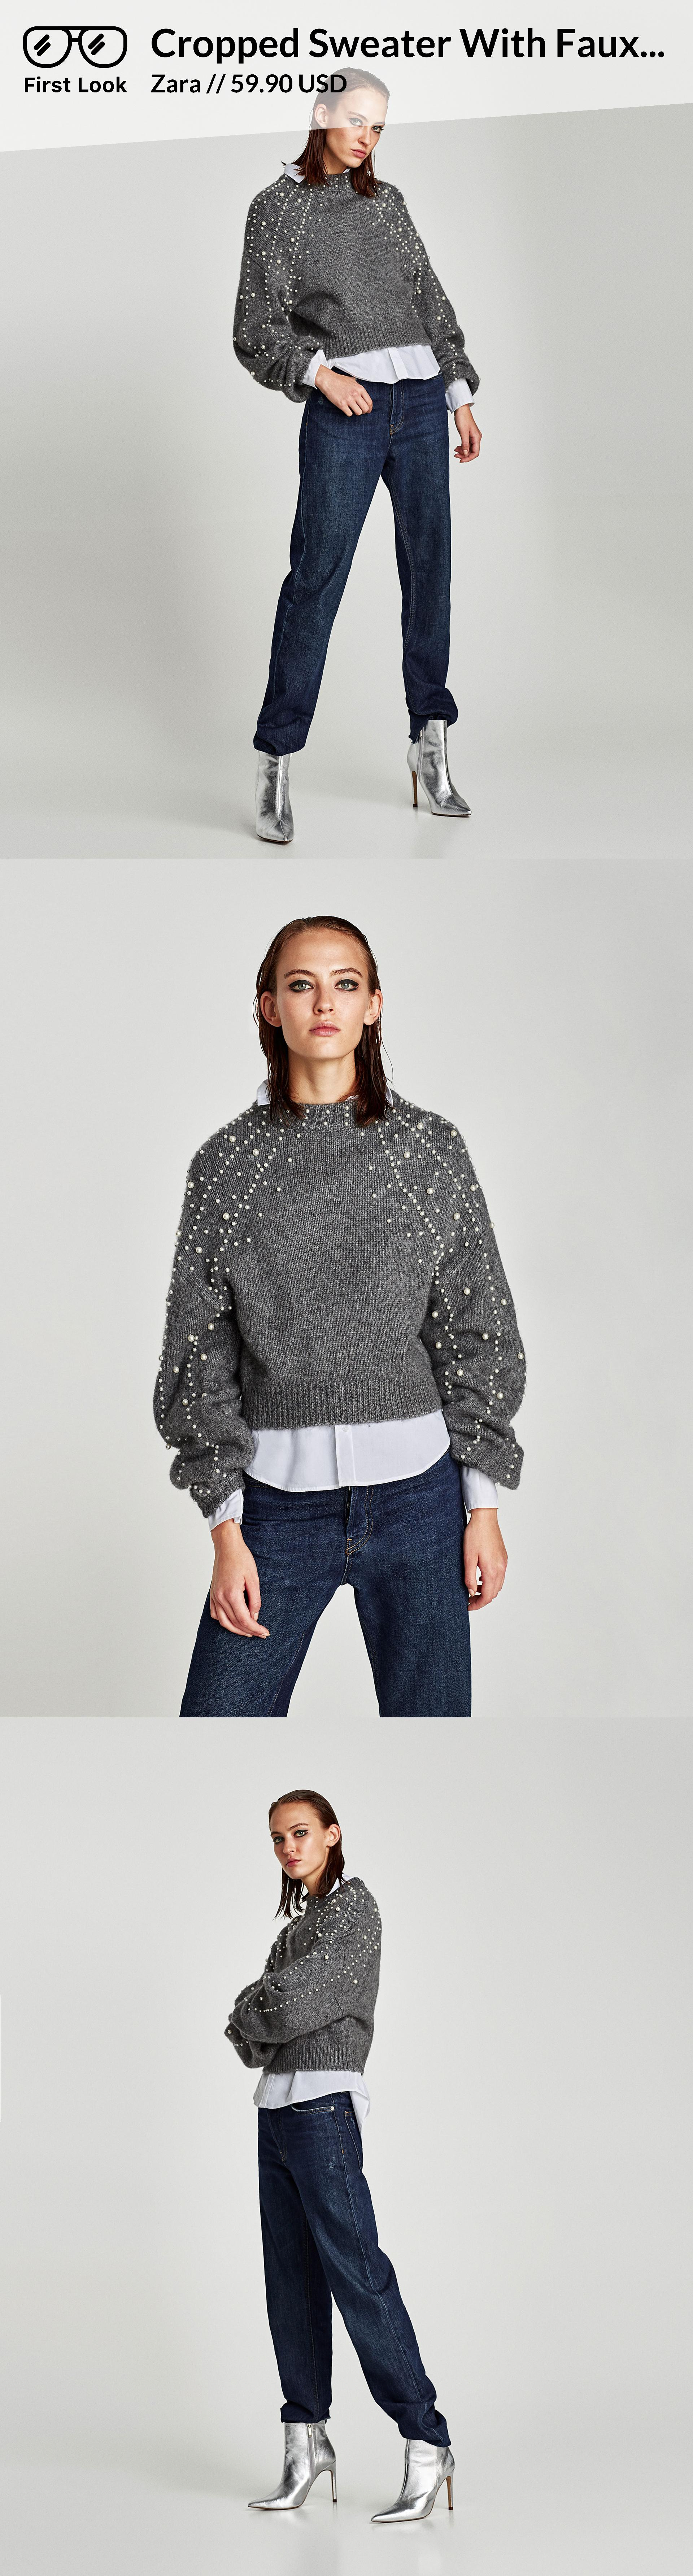 c45f16be Cropped Sweater With Faux Pearls // 59.90 USD // Zara // Round neck, cropped  sweater with long sleeves. Features faux pearls on the neckline and sleeves.